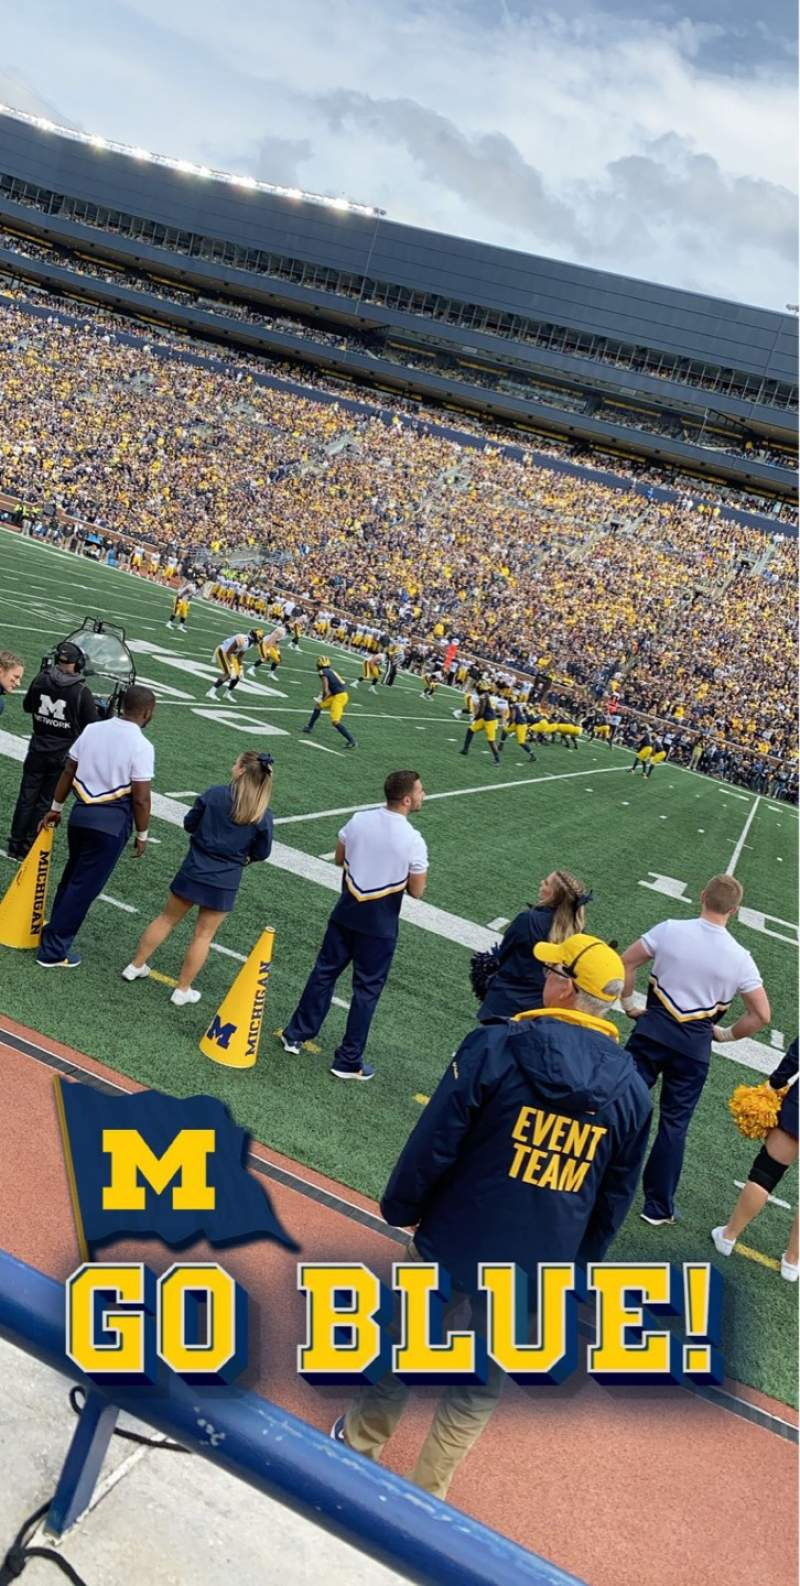 Seating view for Michigan Stadium Section 20 Row A Seat 10